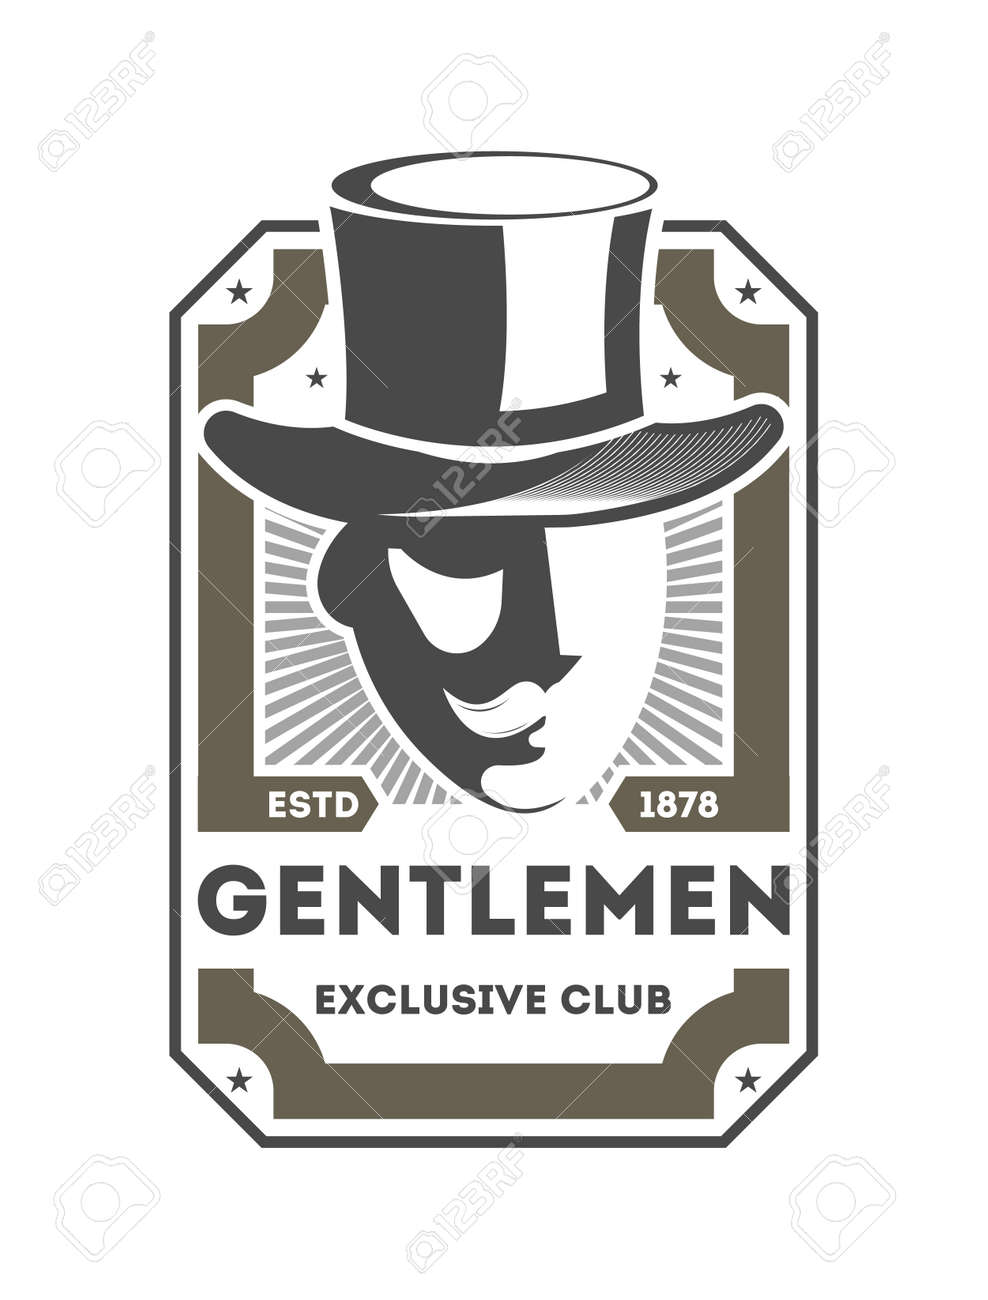 317755fd915 Gentleman exclusive club vintage isolated label with man in cylinder hat. Man  club badge